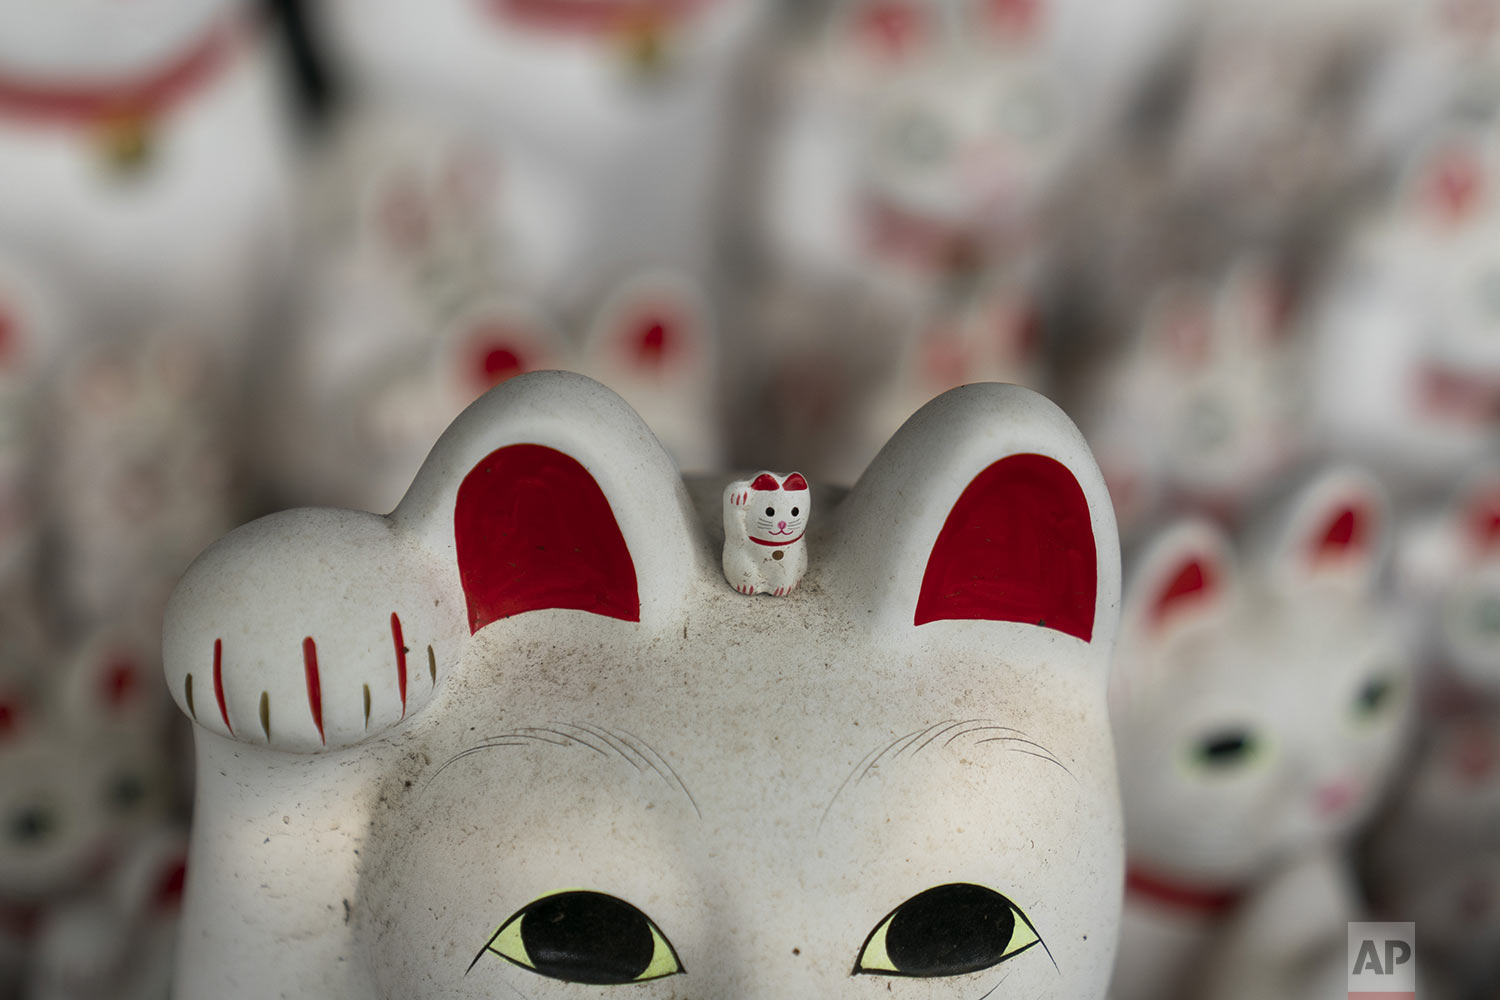 A small beckoning cat figurine is placed on top of a large statue at Gotokuji Temple in Tokyo, Tuesday, June 25, 2019. (AP Photo/Jae C. Hong)